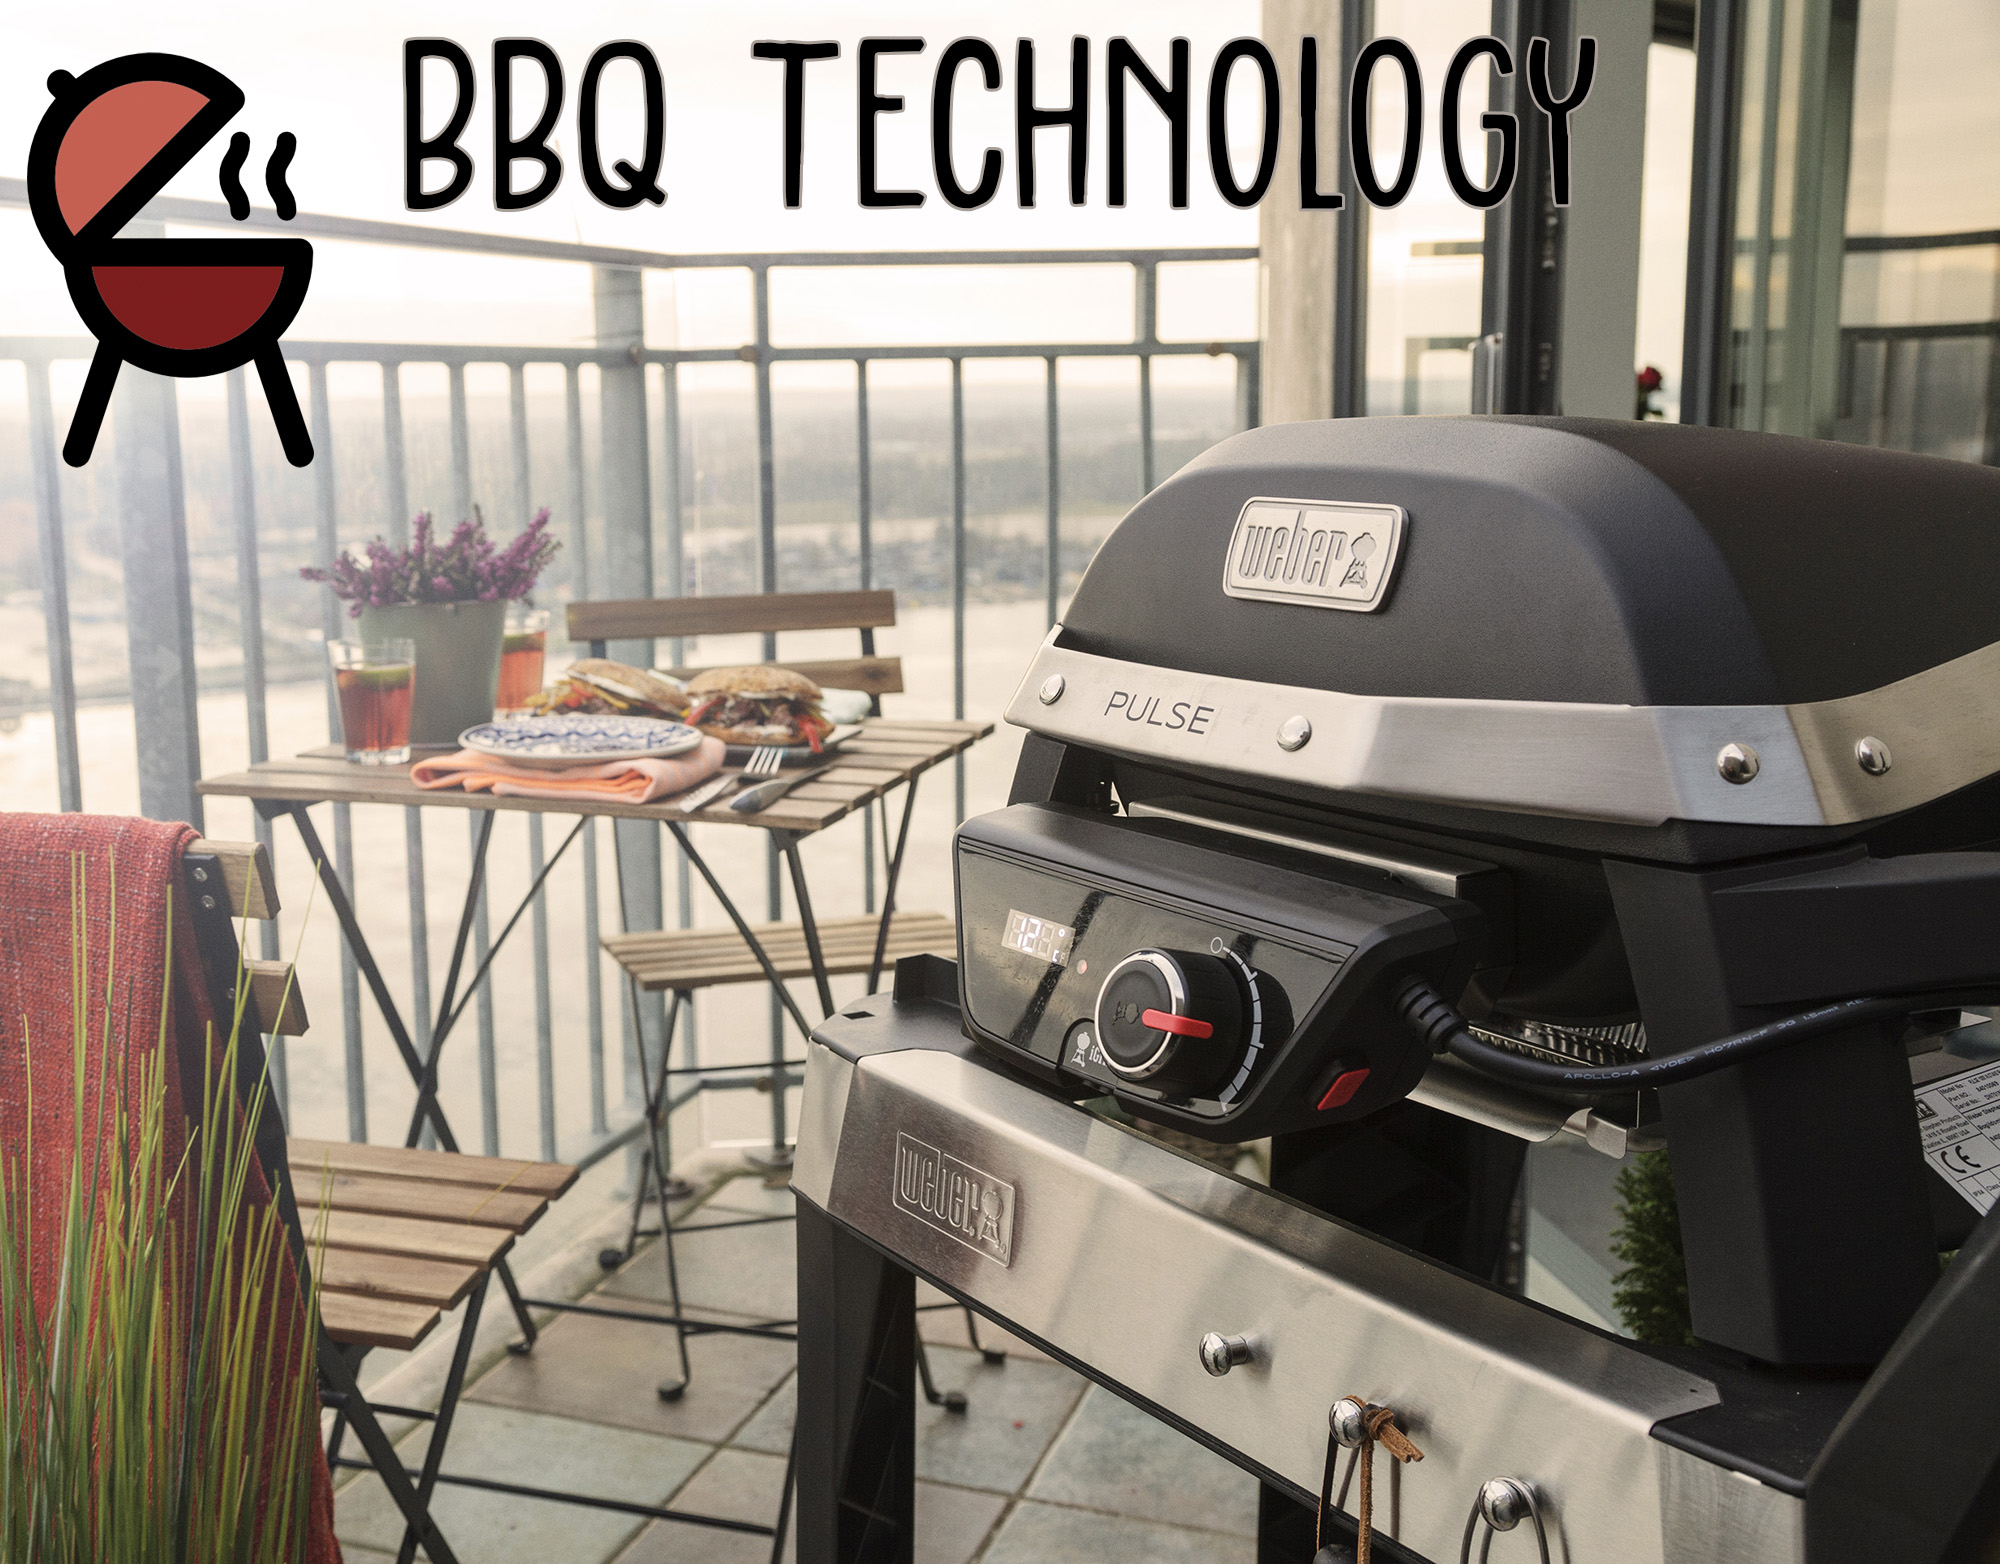 BBQ Technology with Weber